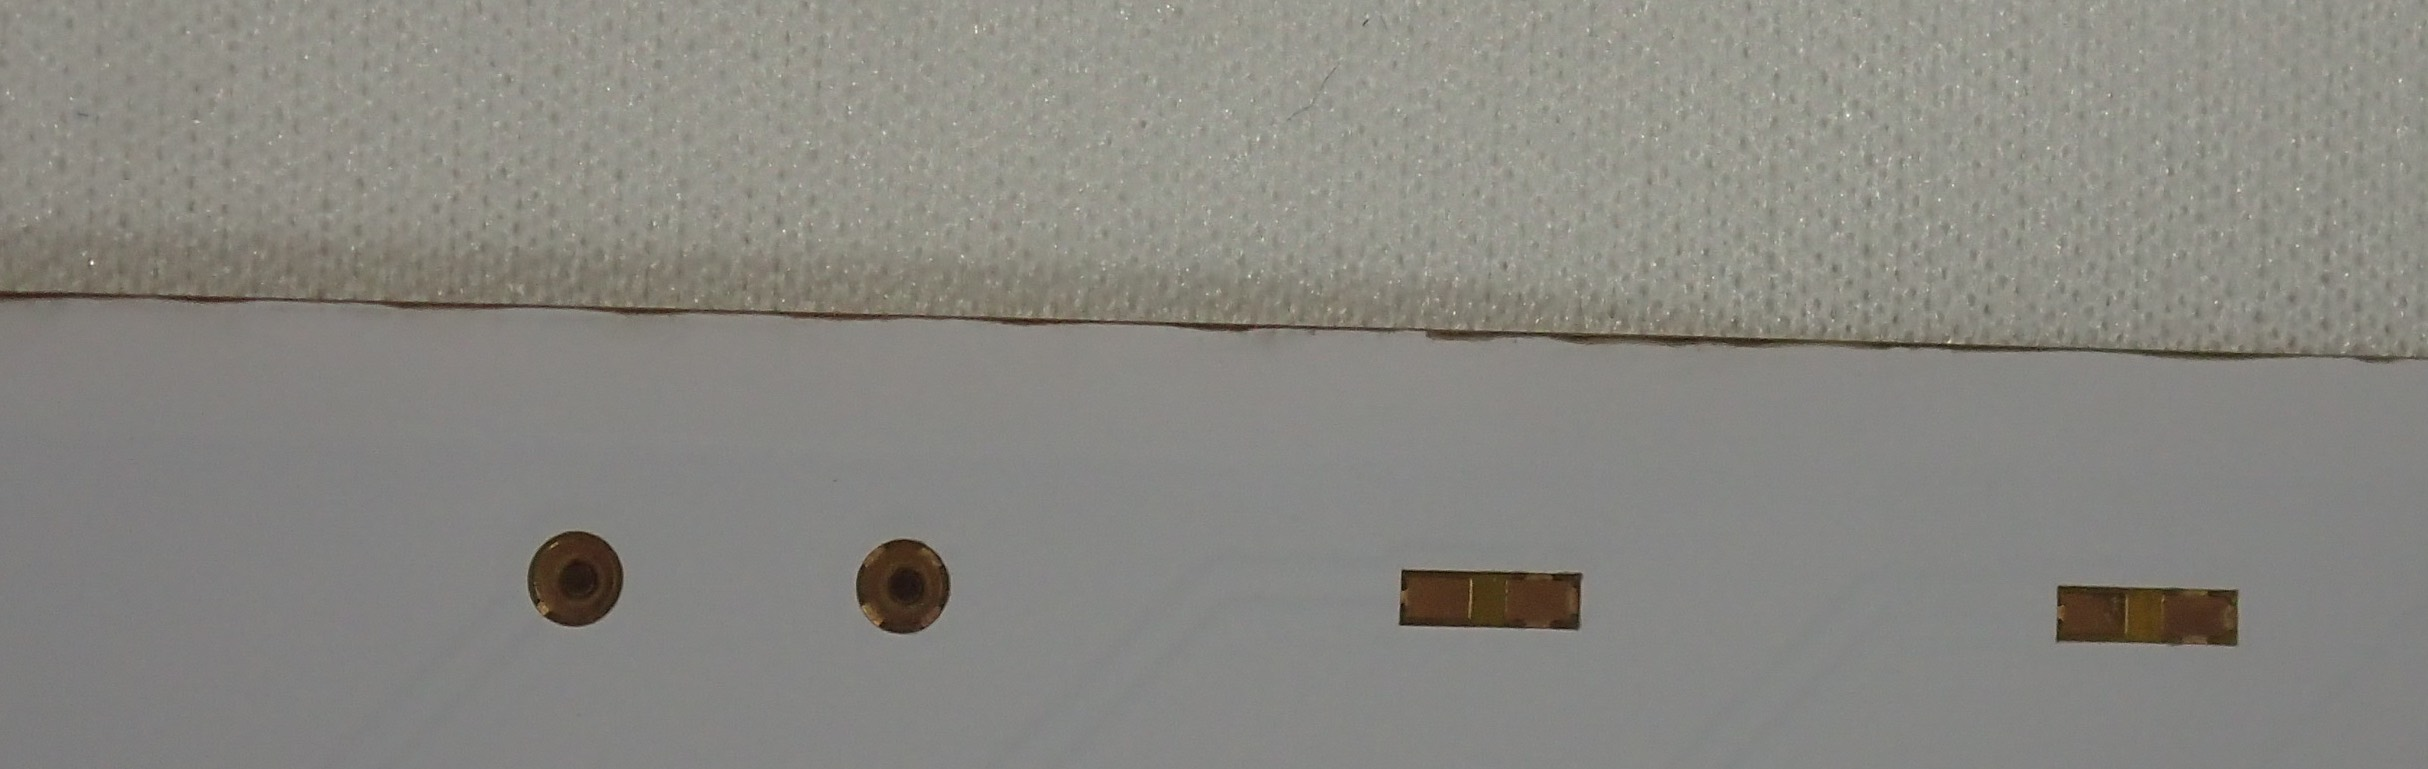 Picture showing the dirty edge of a pcb